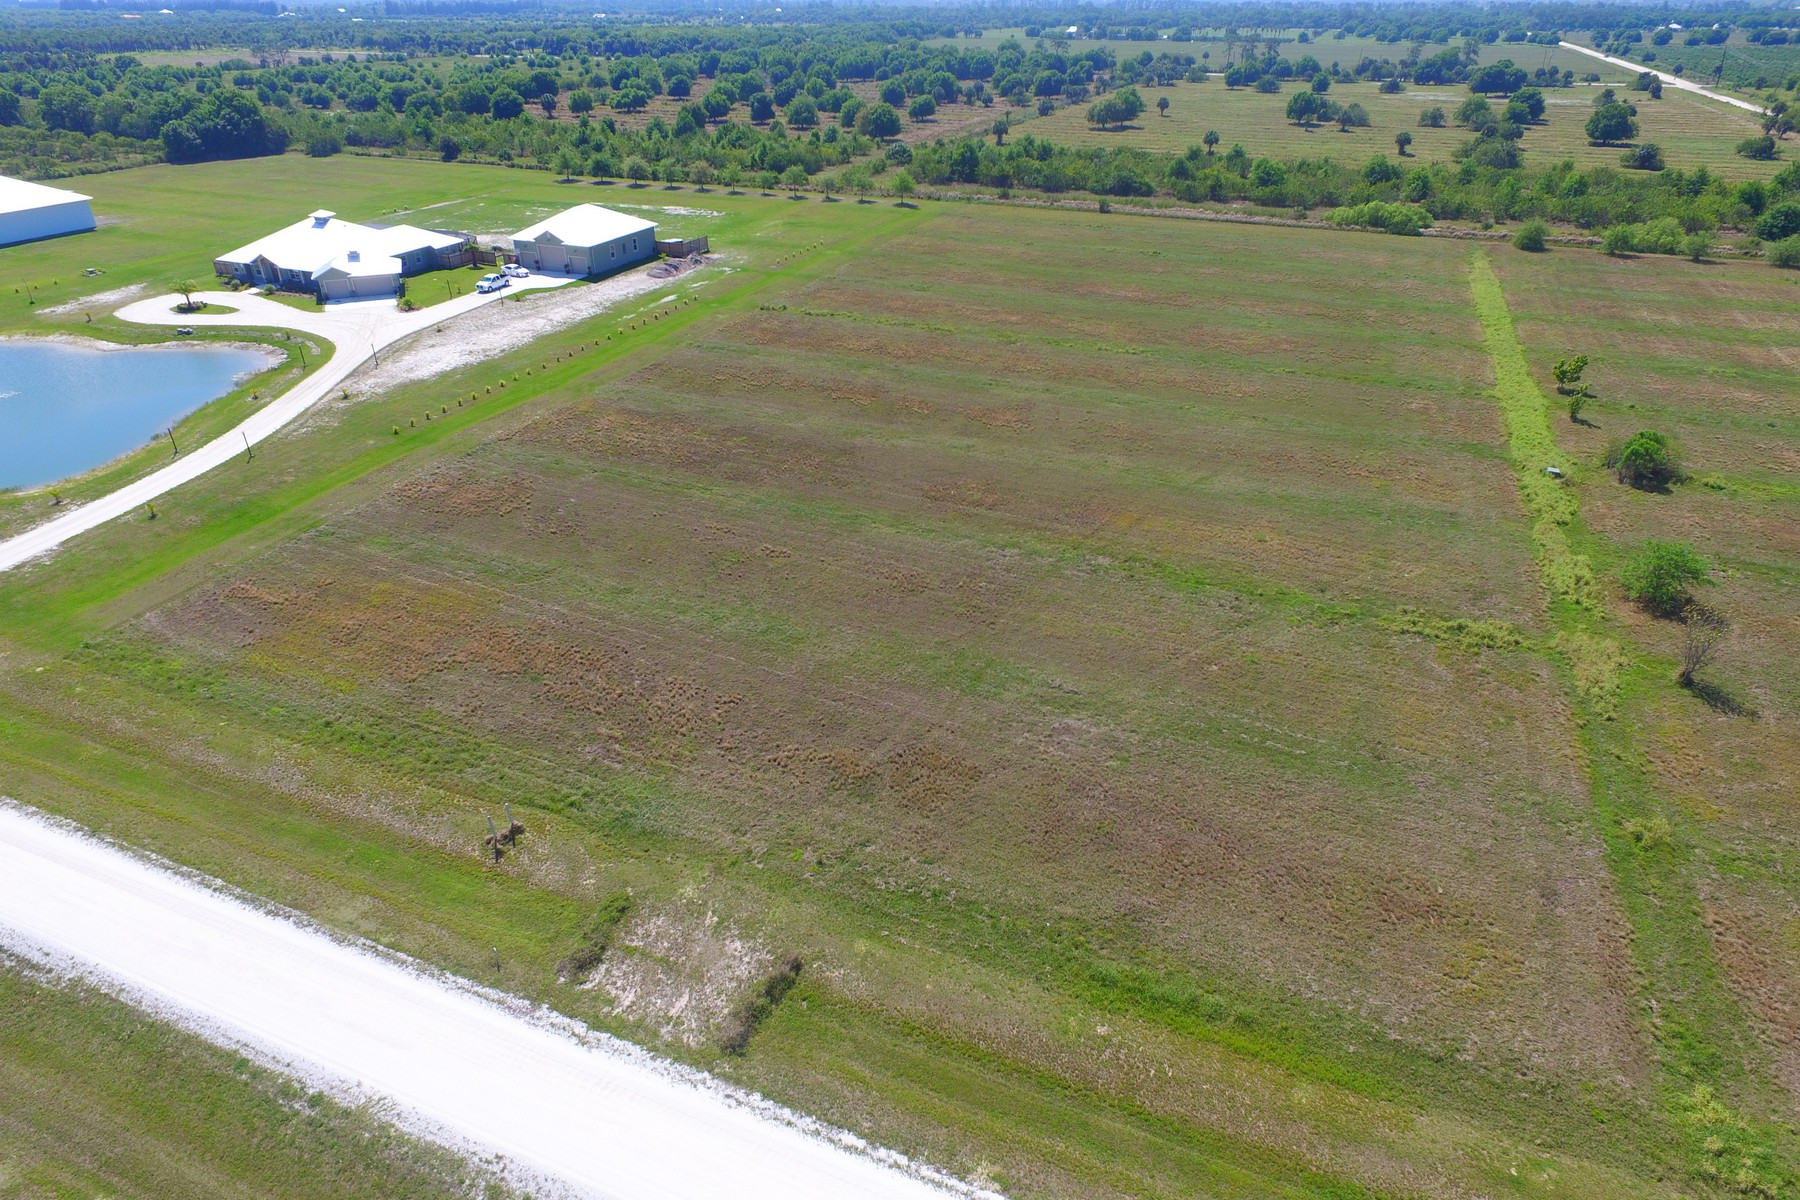 Land for Sale at 5 Acre Homesite in Victoria Plantation 6505 Lily Lane Vero Beach, Florida 32968 United States